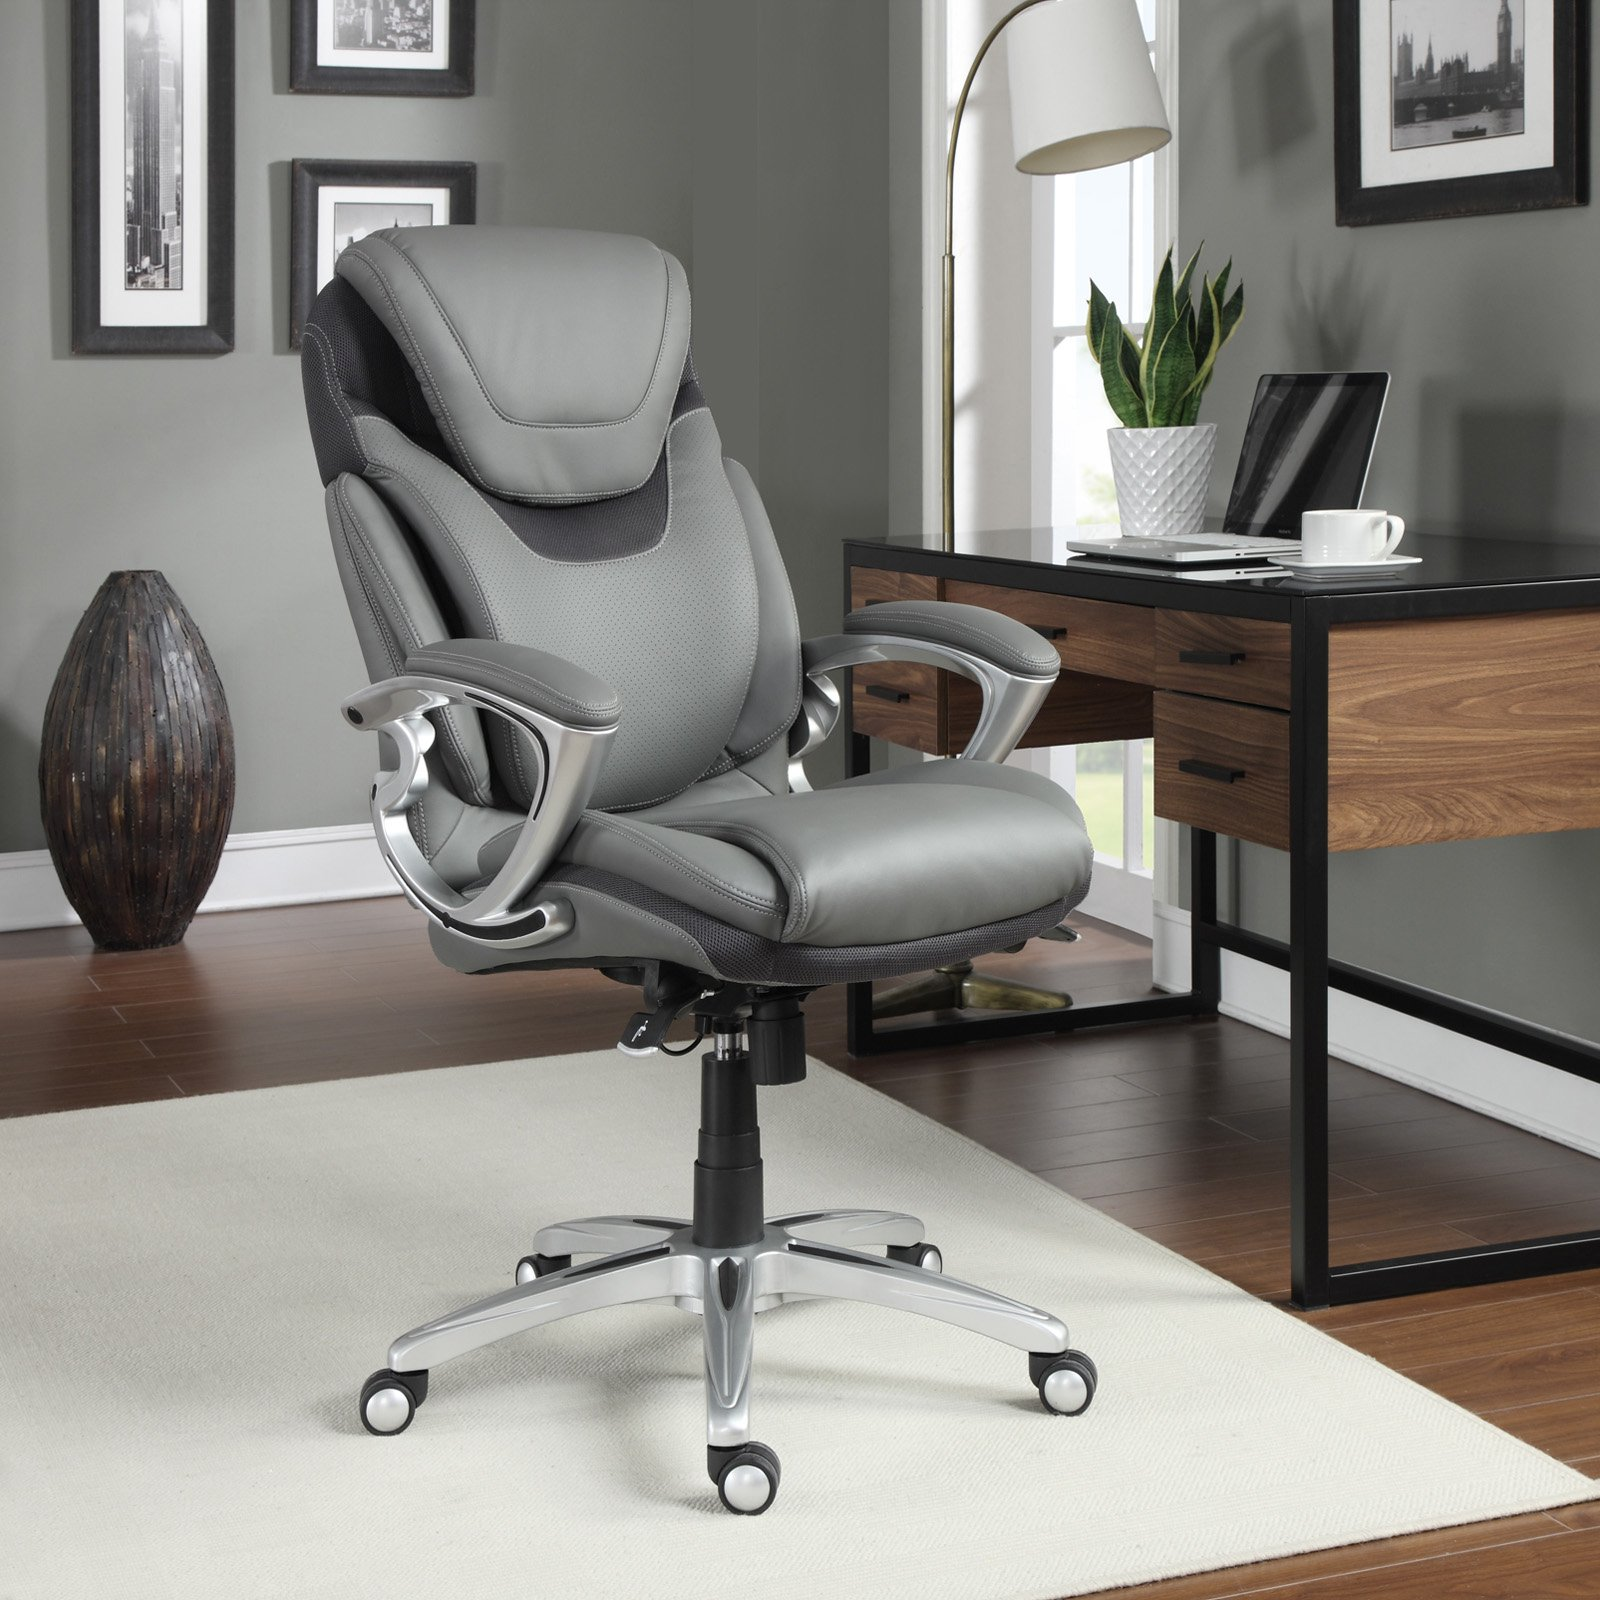 Serta AIR Health U0026 Wellness Leather Executive Office Chair, Light Grey    Walmart.com